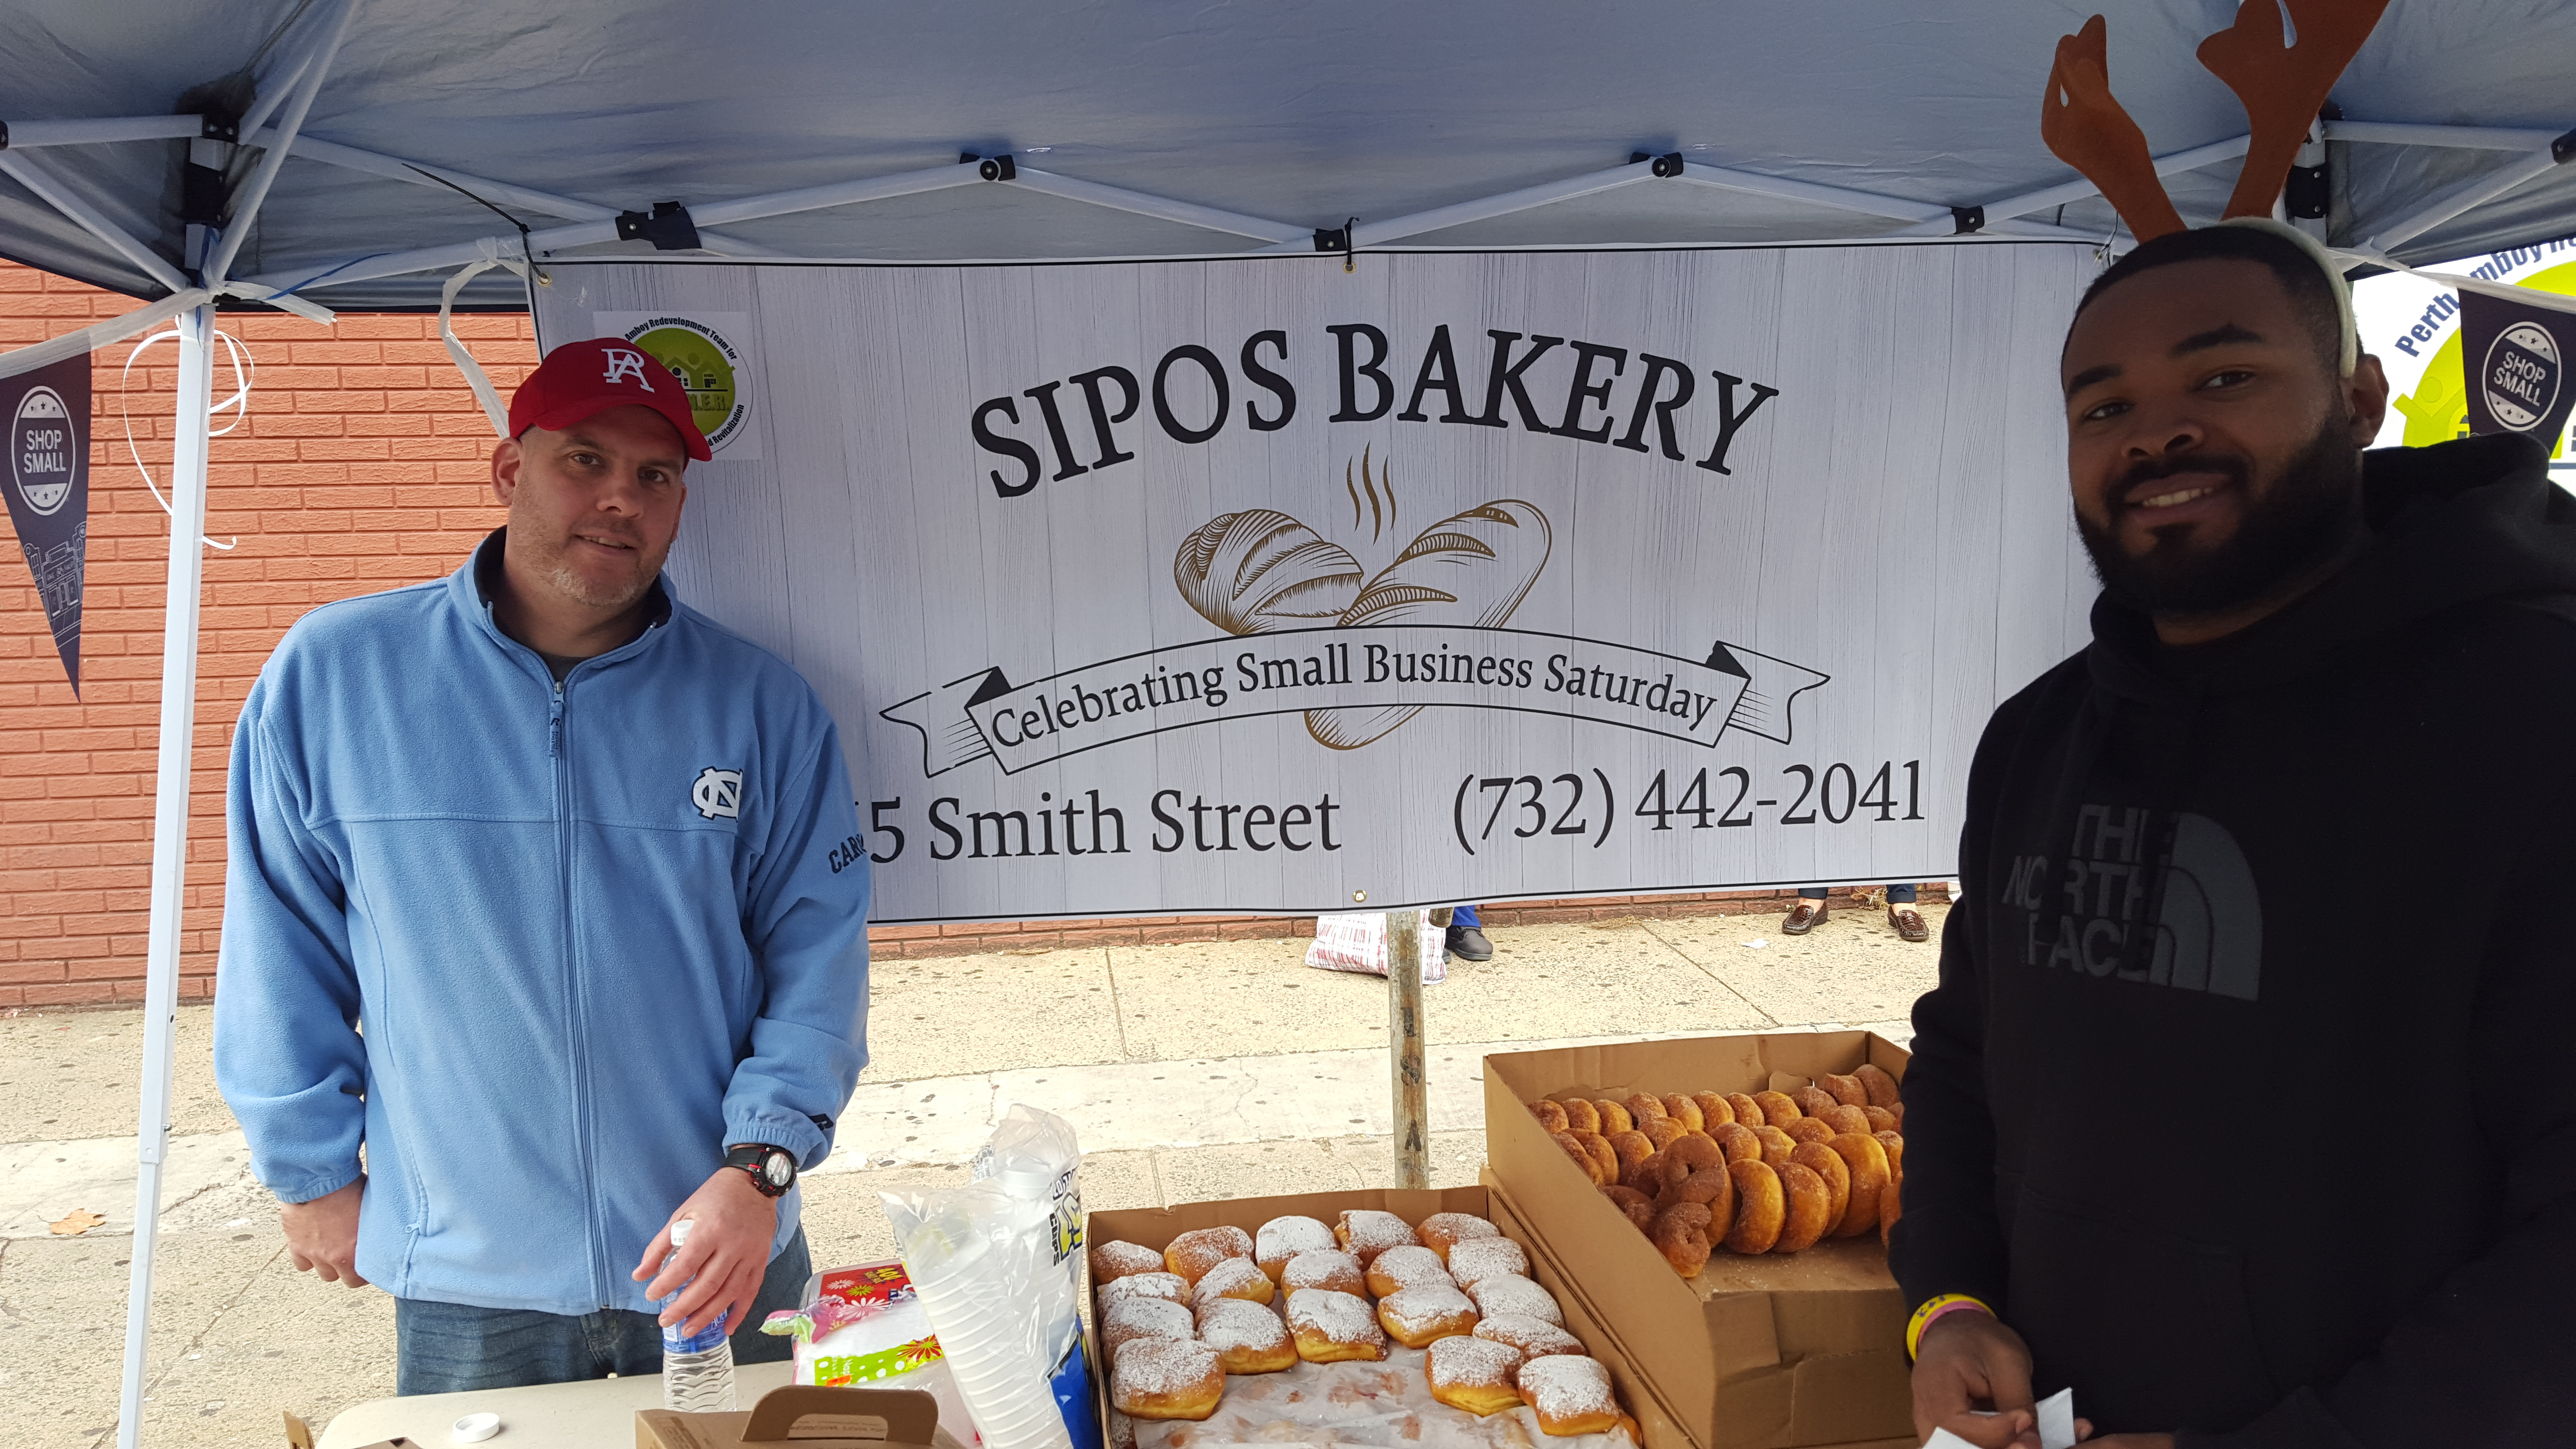 Sipos Bakery, GATEWAY Business at Small Business Saturday